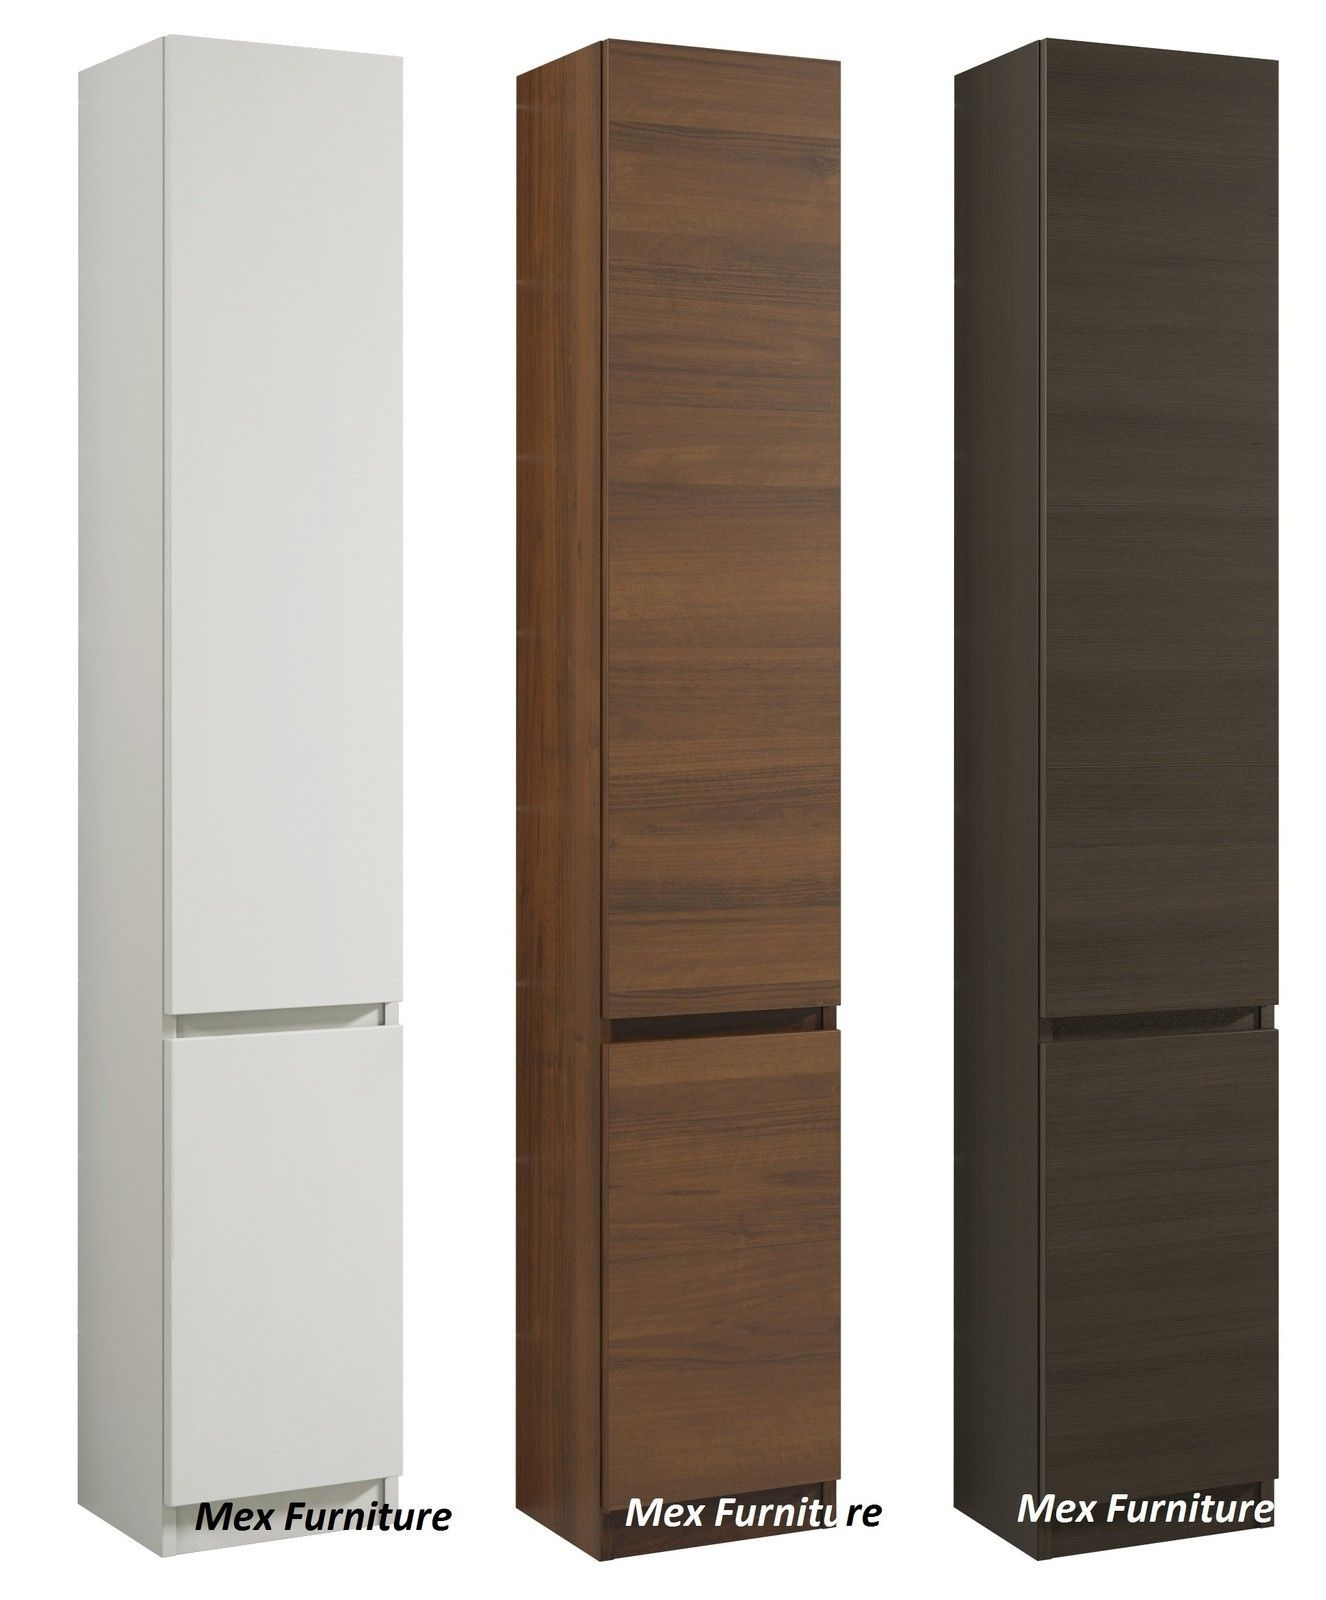 Tall bathroom storage cabinets - Modern 175cm Tall Bathroom Storage Cabinet Matt Finish 2 Doors